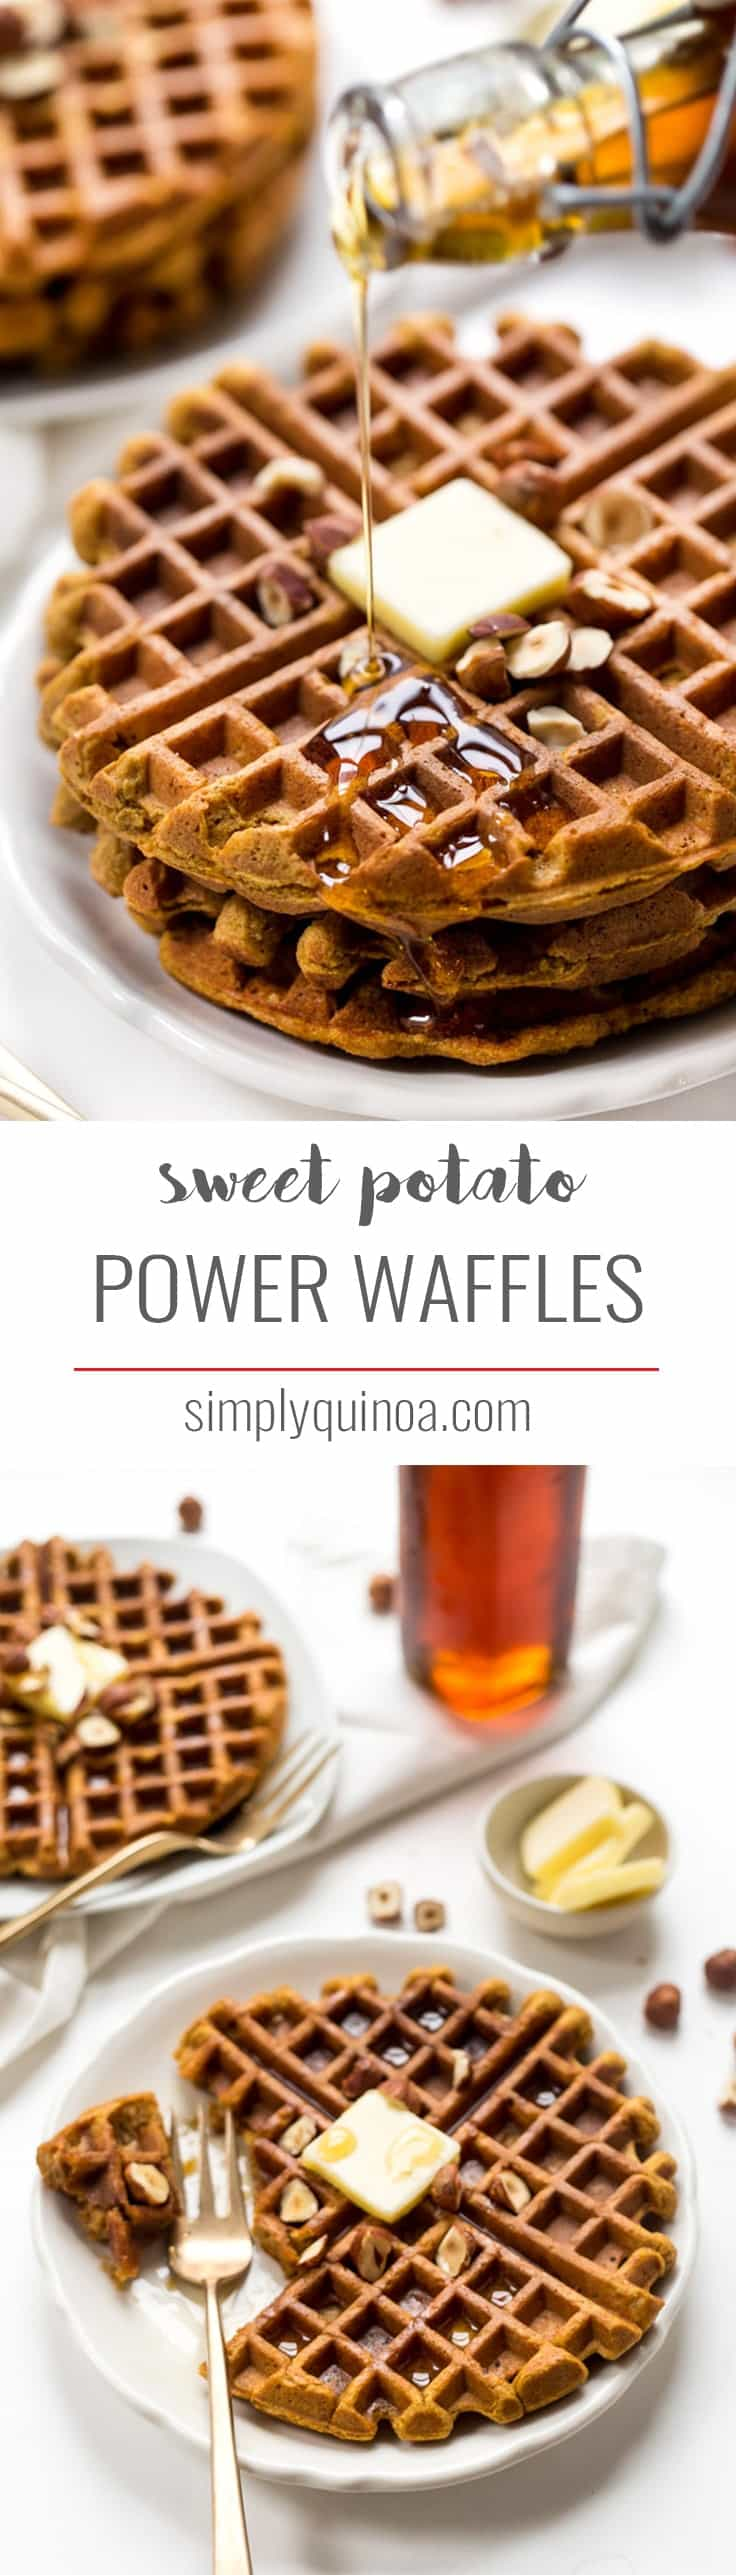 These HEALTHY Sweet Potato Waffles are packed with Omega-3s and make a perfect weekend breakfast! They're light, fluffy, flavorful and also gluten-free!